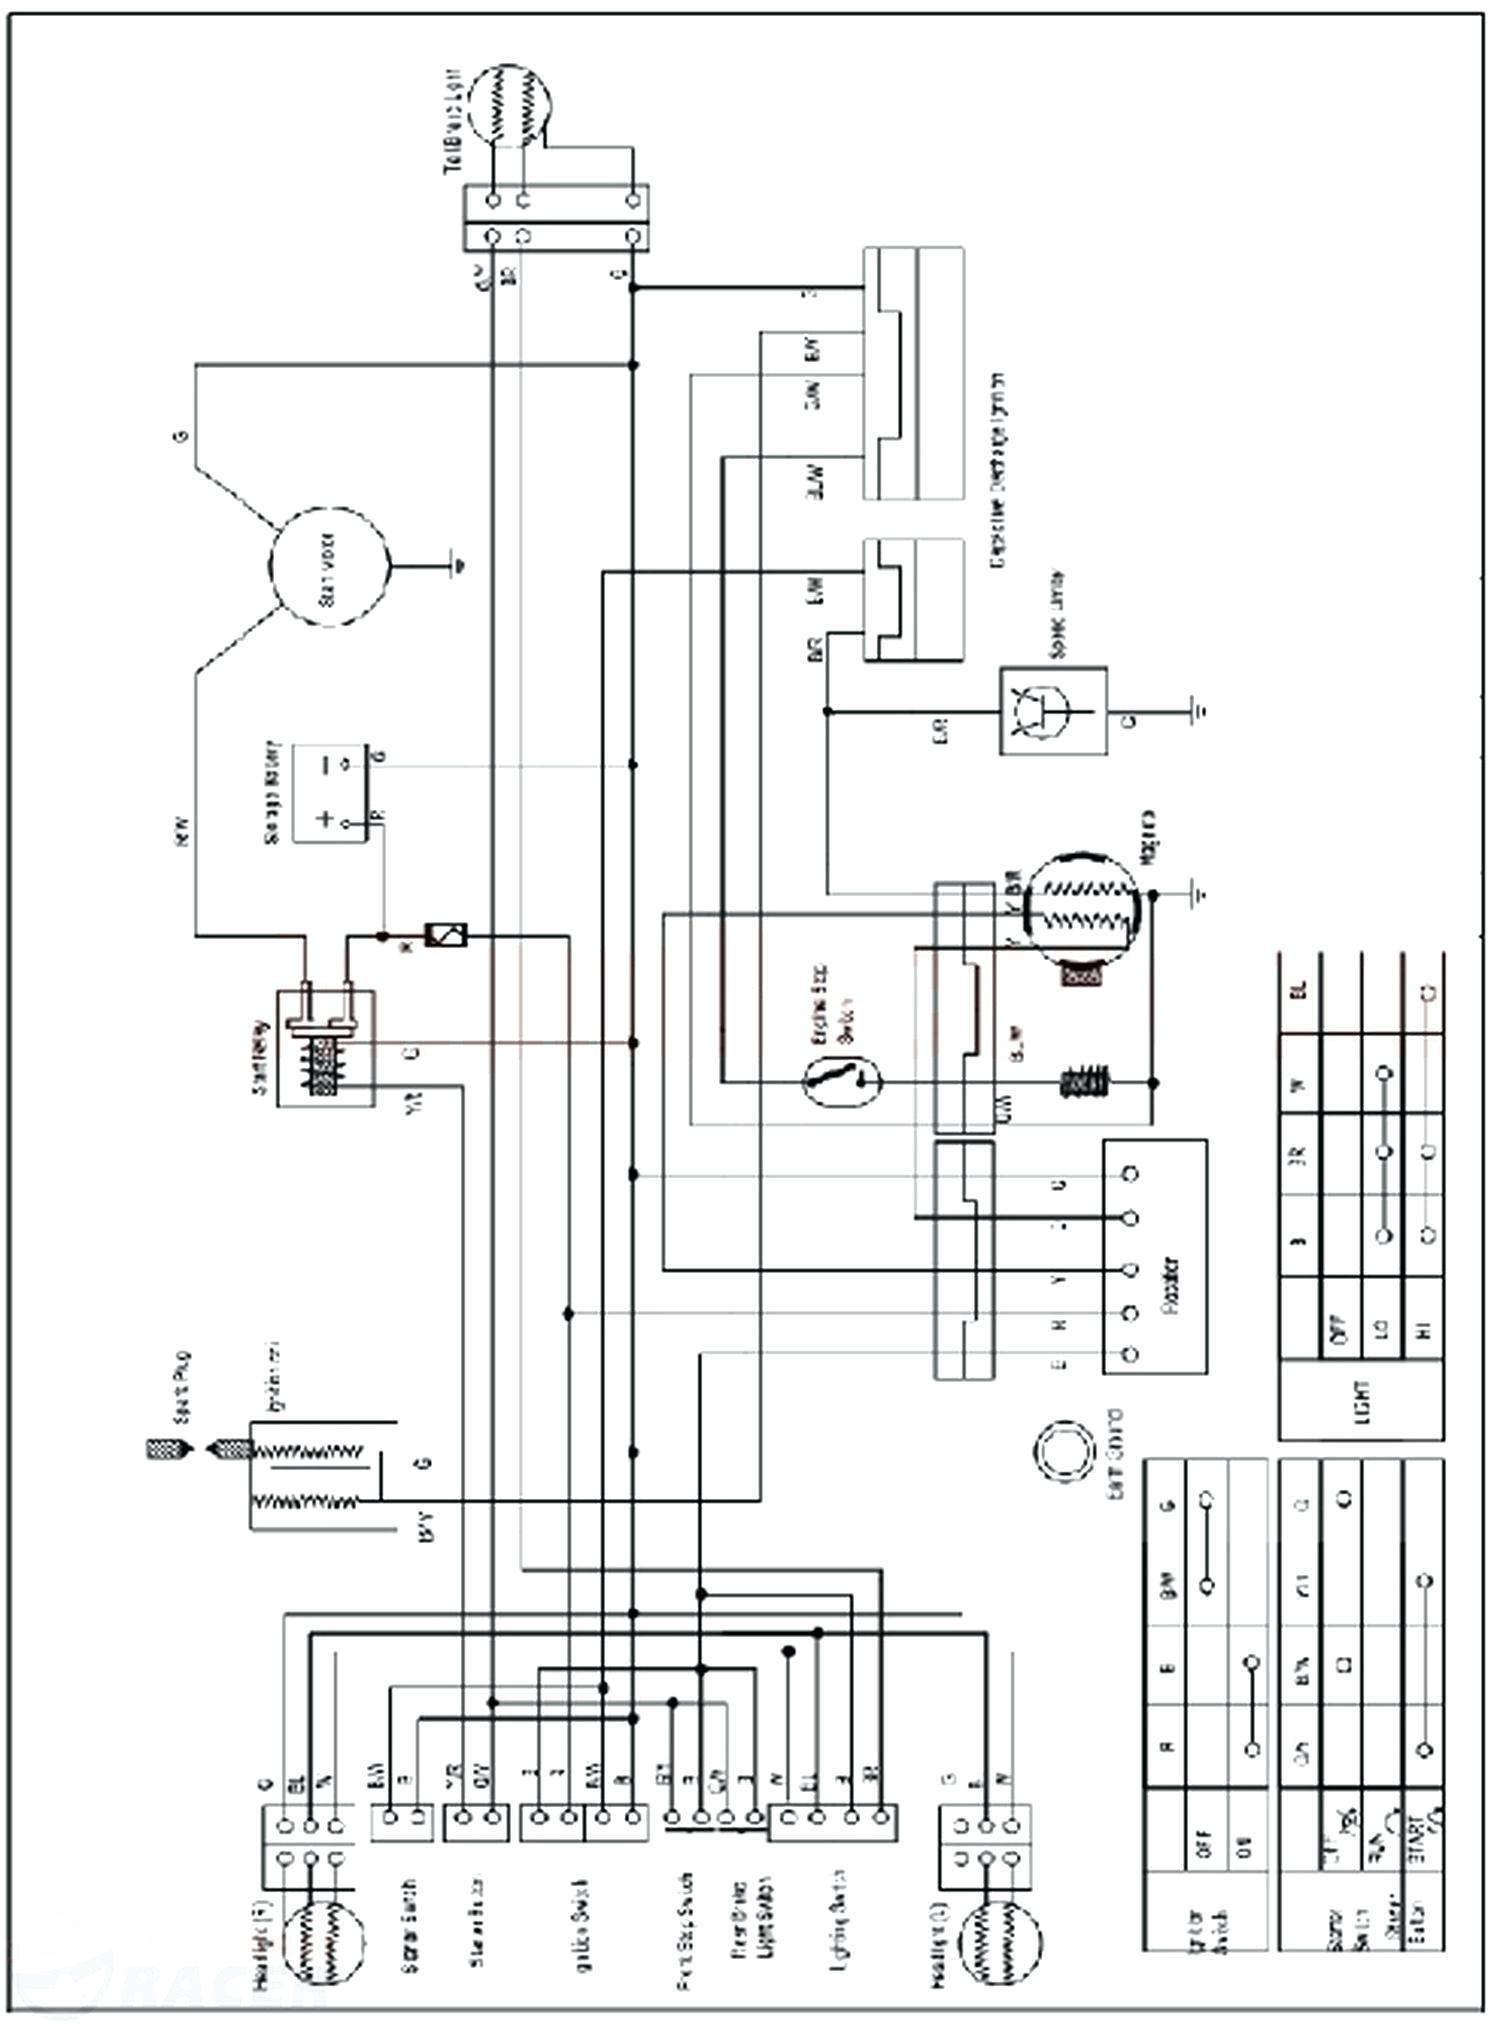 Taotao 110cc    atv       Wiring       Diagram      Free    Wiring       Diagram